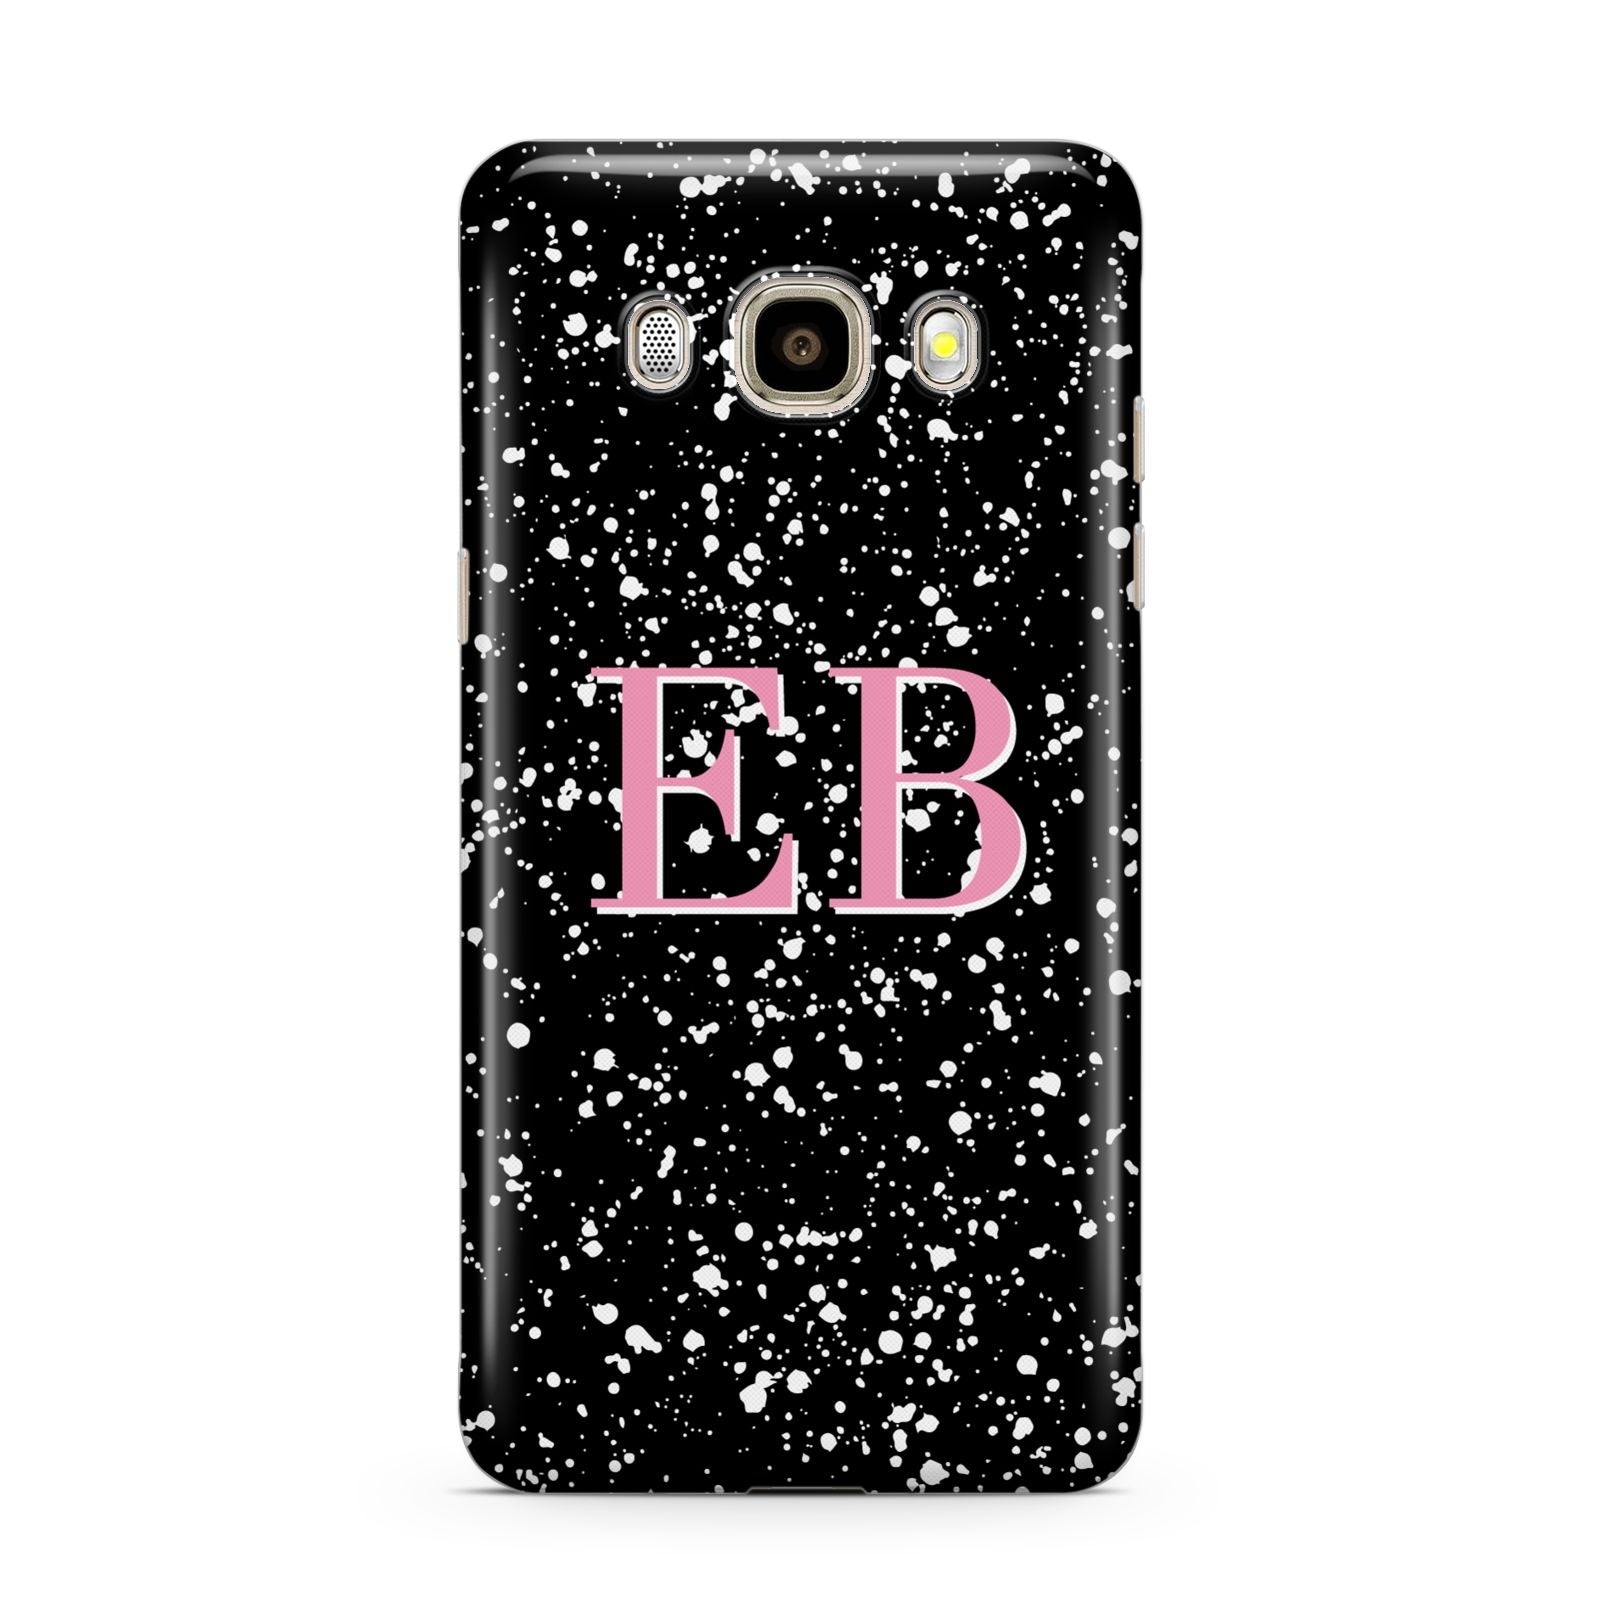 Personalised Black Ink Splat Initials Samsung Galaxy J7 2016 Case on gold phone